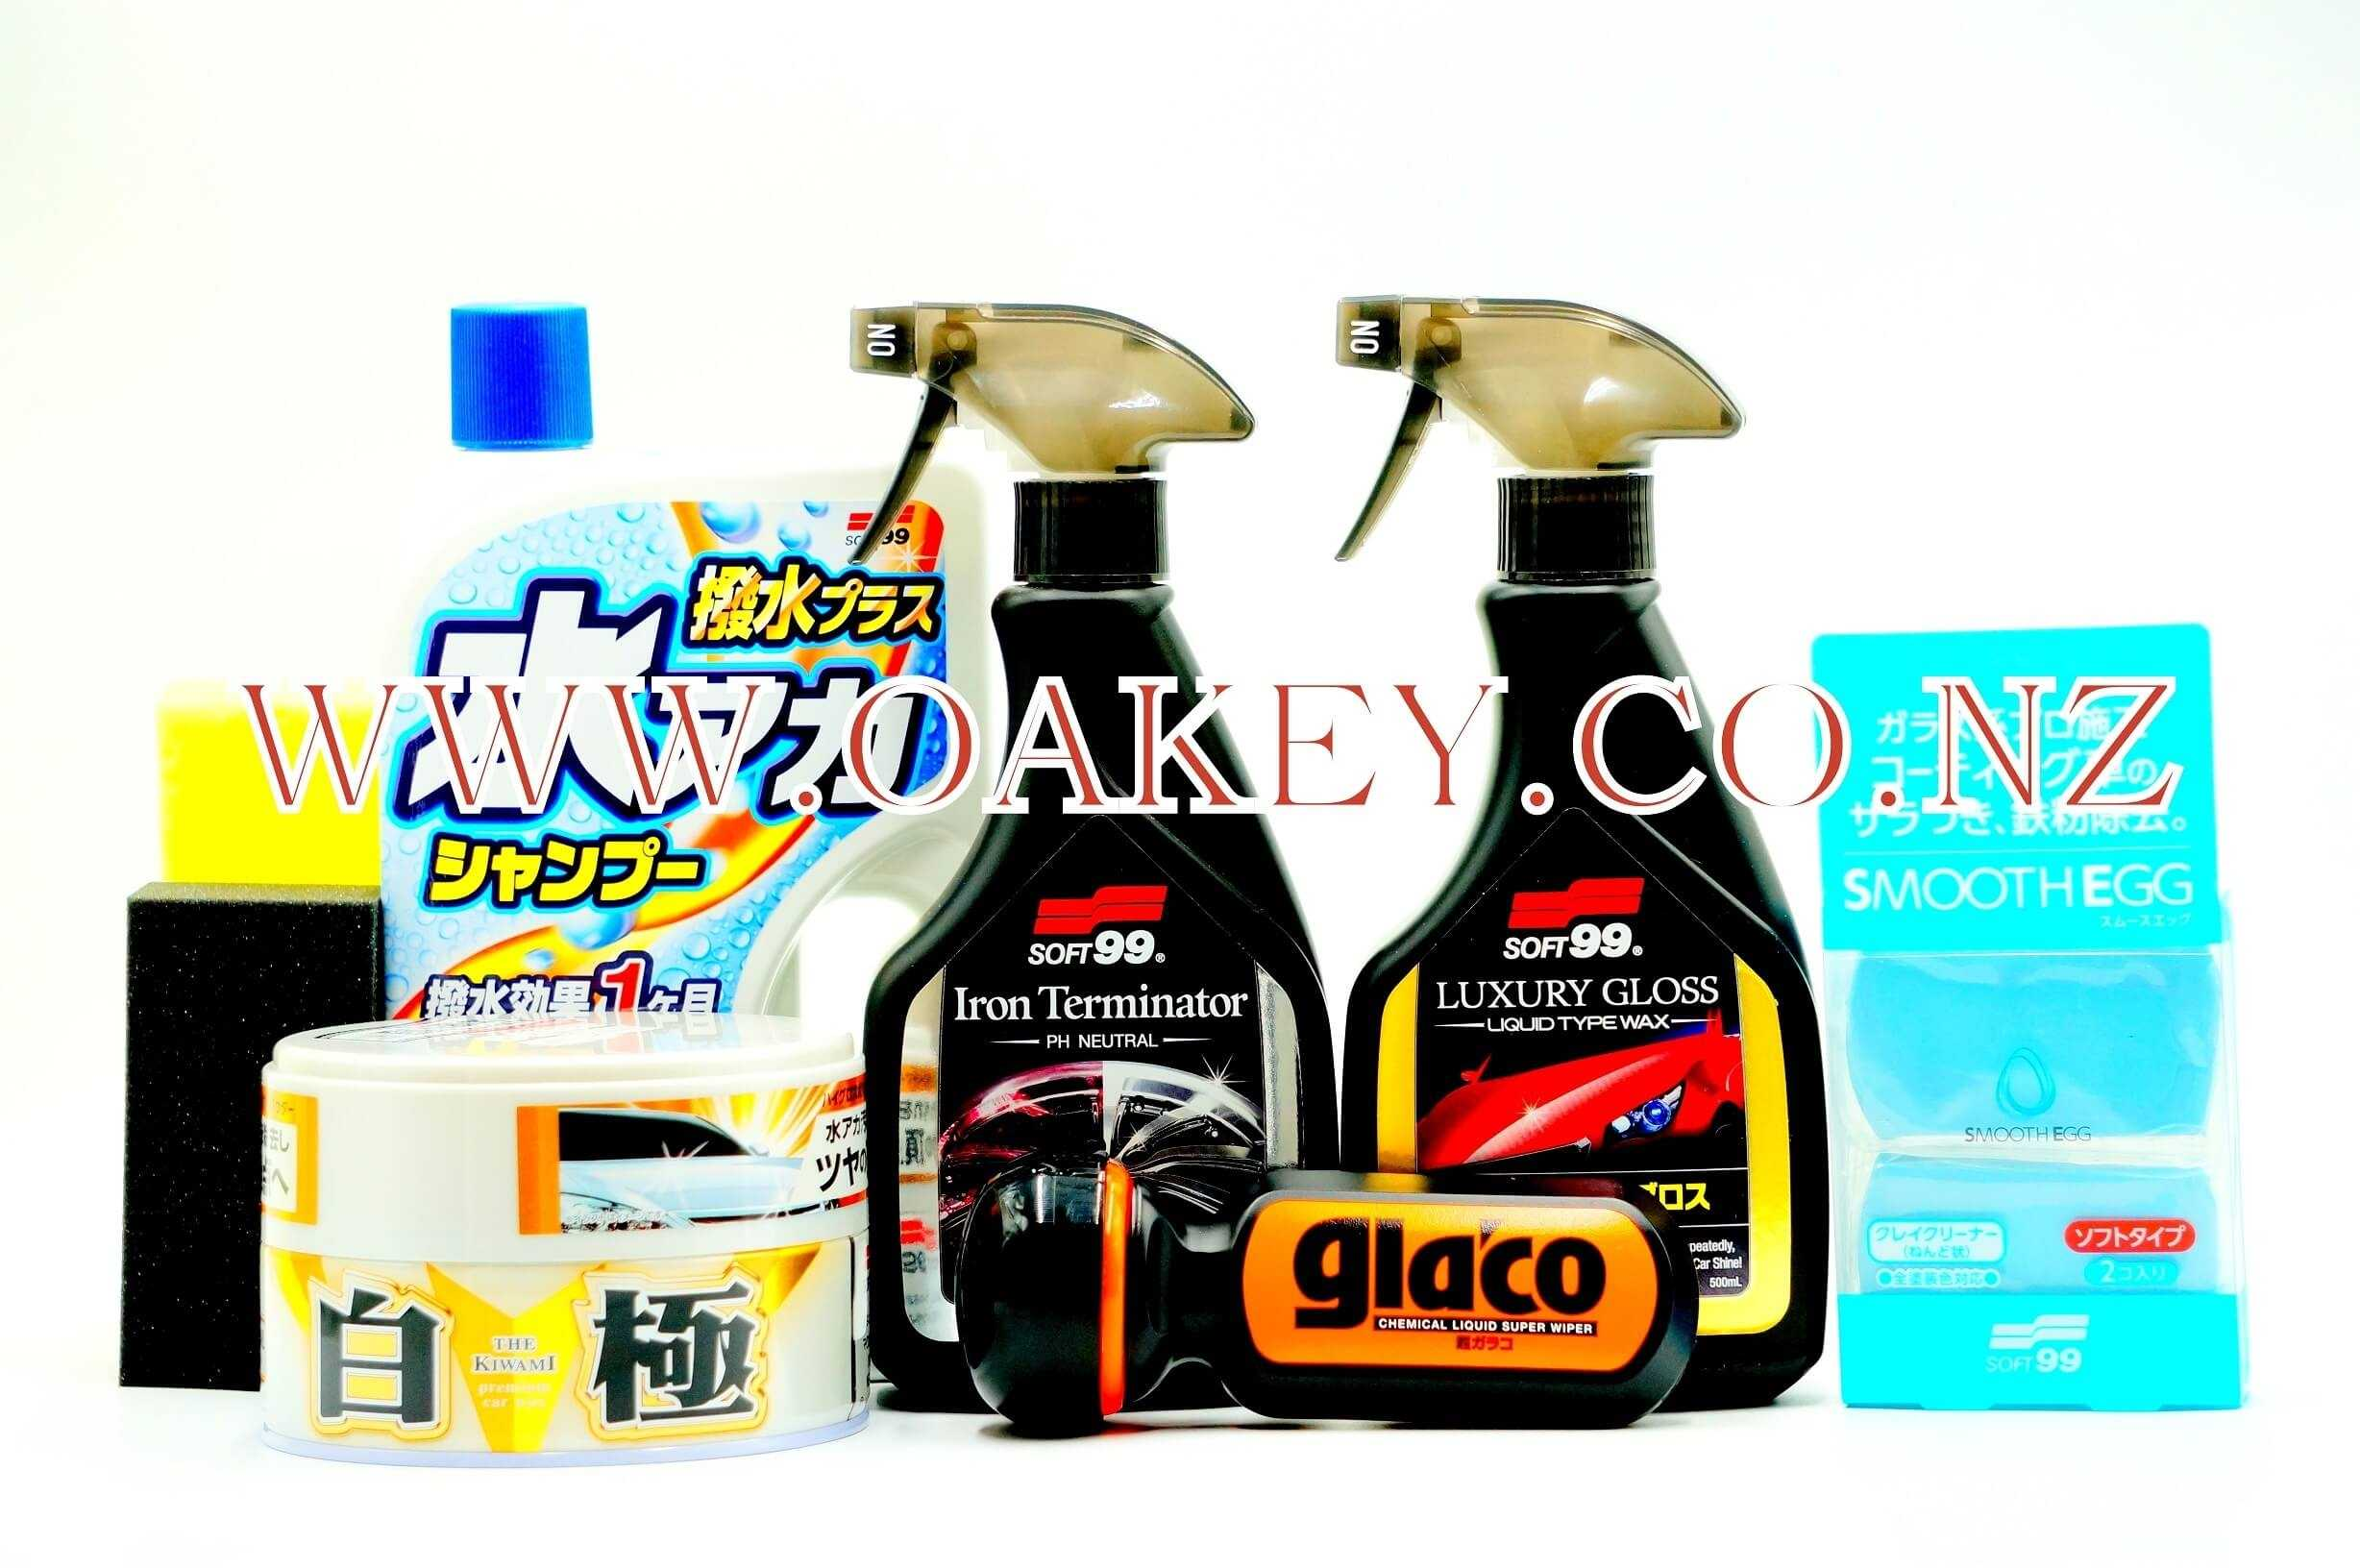 The Kiwami Car Care Kit 6 Products